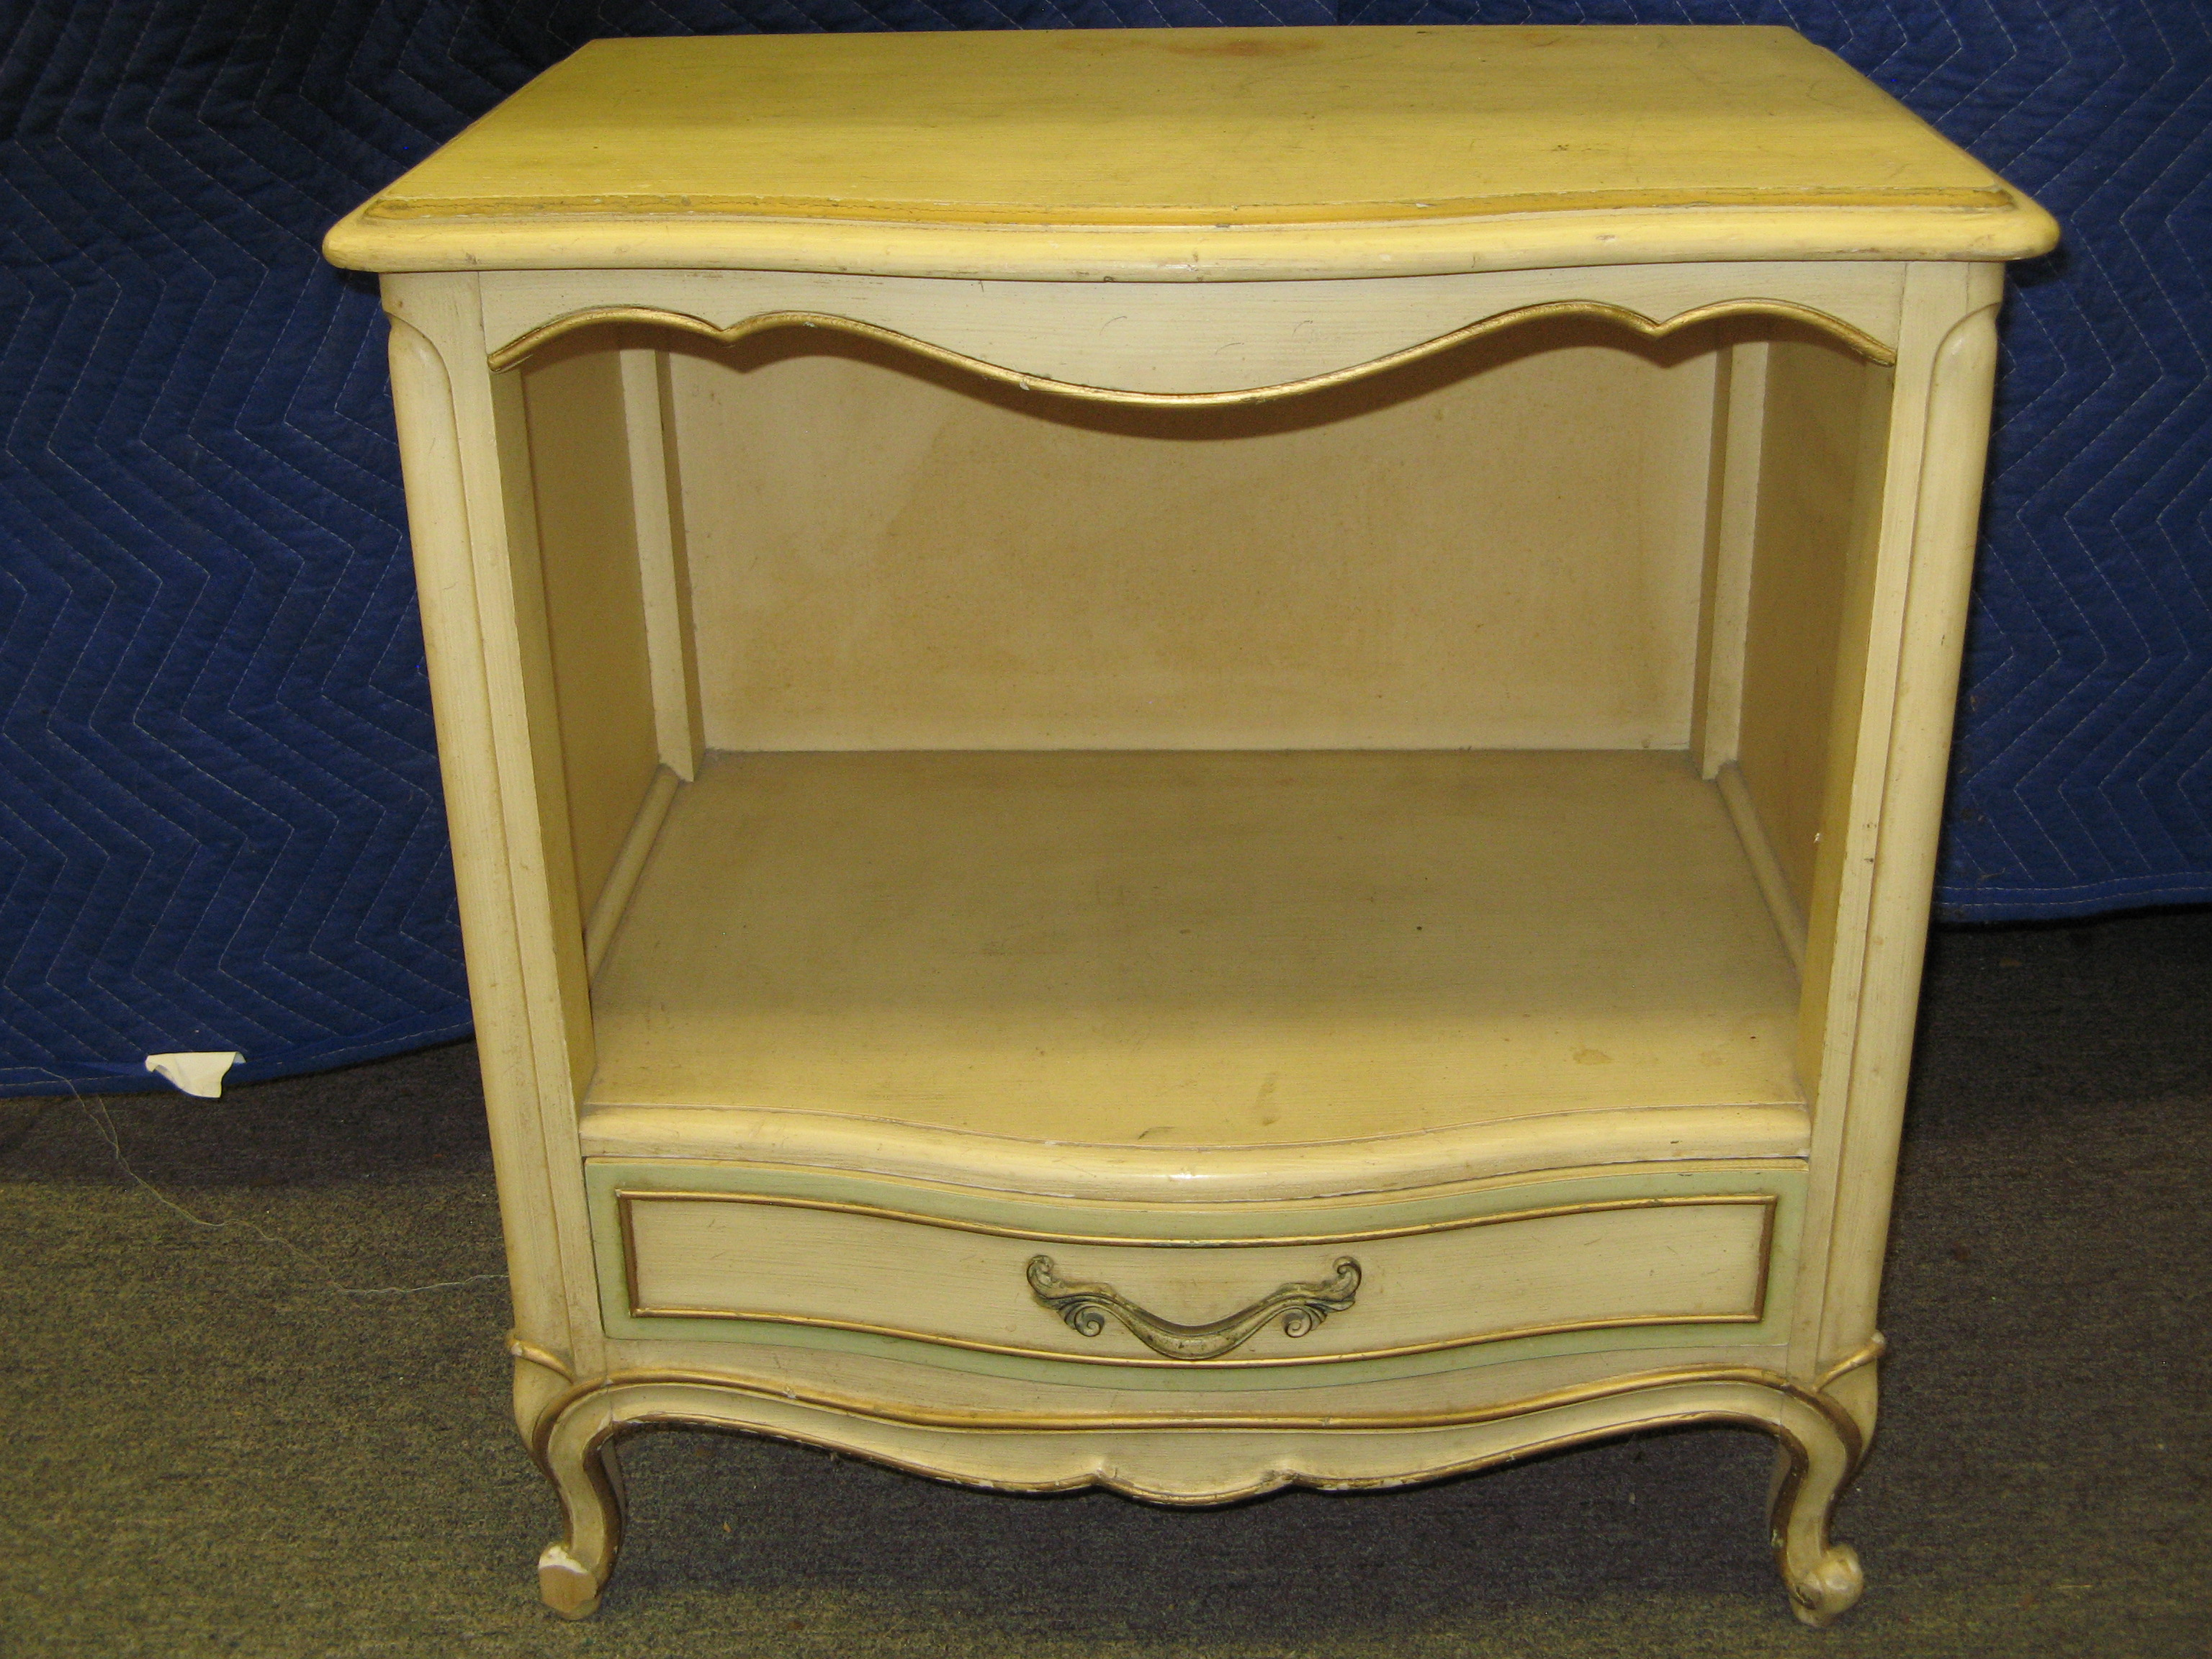 Drexel French Provincial Night Stand with Scalloped Wood Valance, Cream